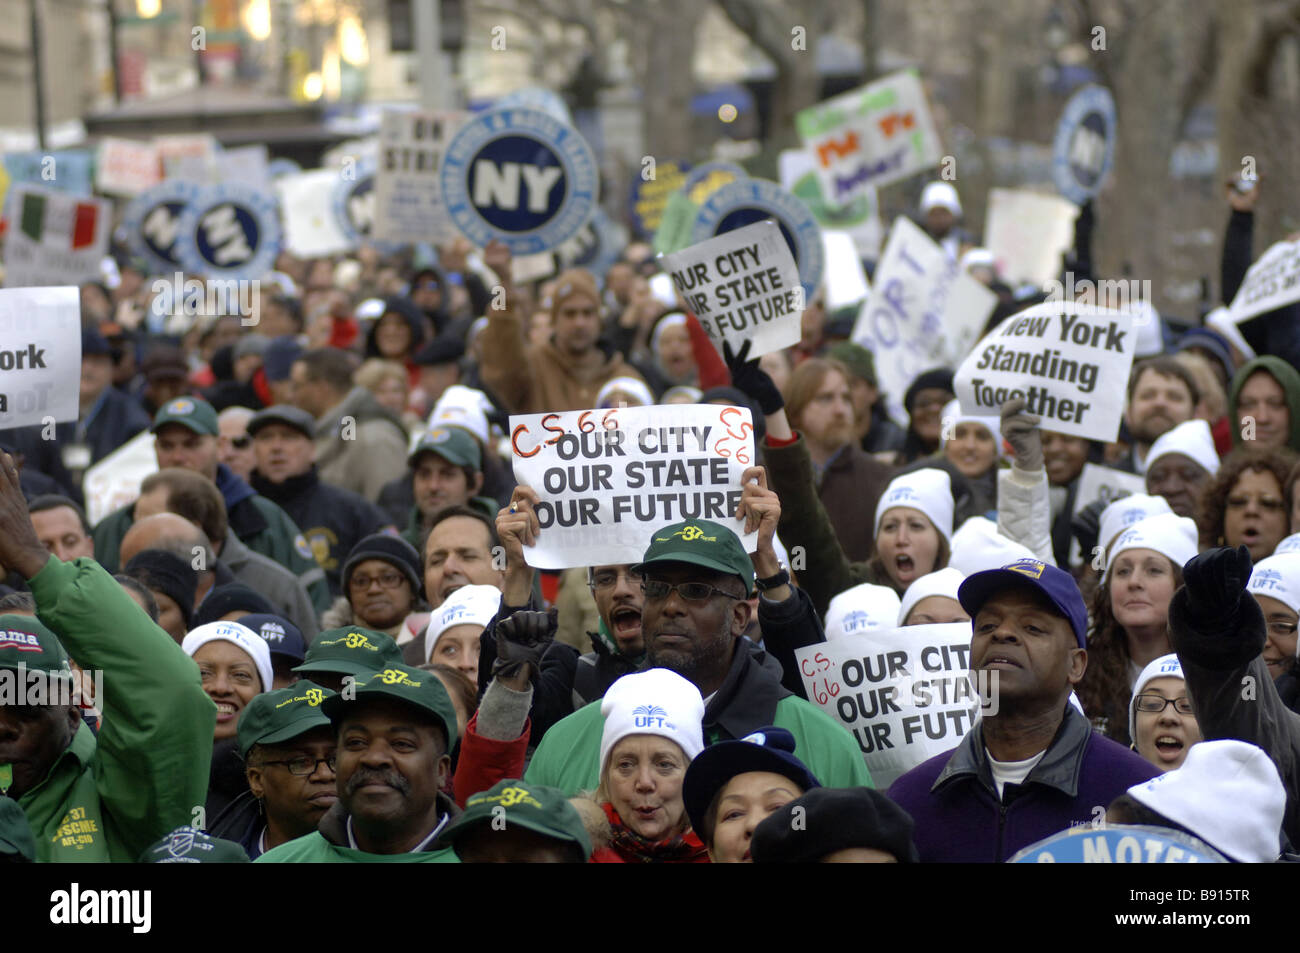 Thousands protest proposed state and city budget cuts outside City Hall in New York - Stock Image